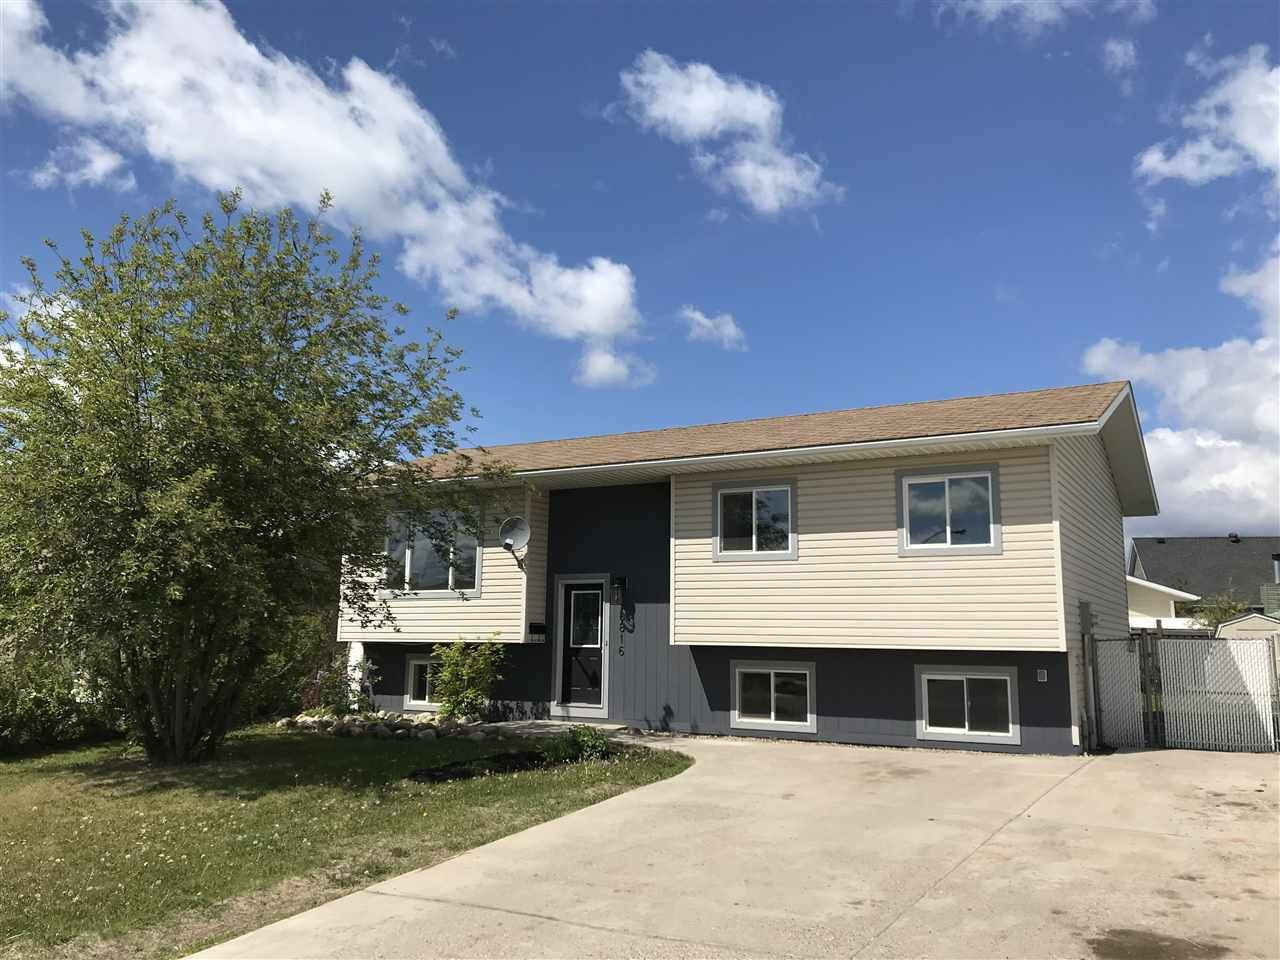 Main Photo: 8816 107A AVENUE in : Fort St. John - City NE House for sale : MLS®# R2379749